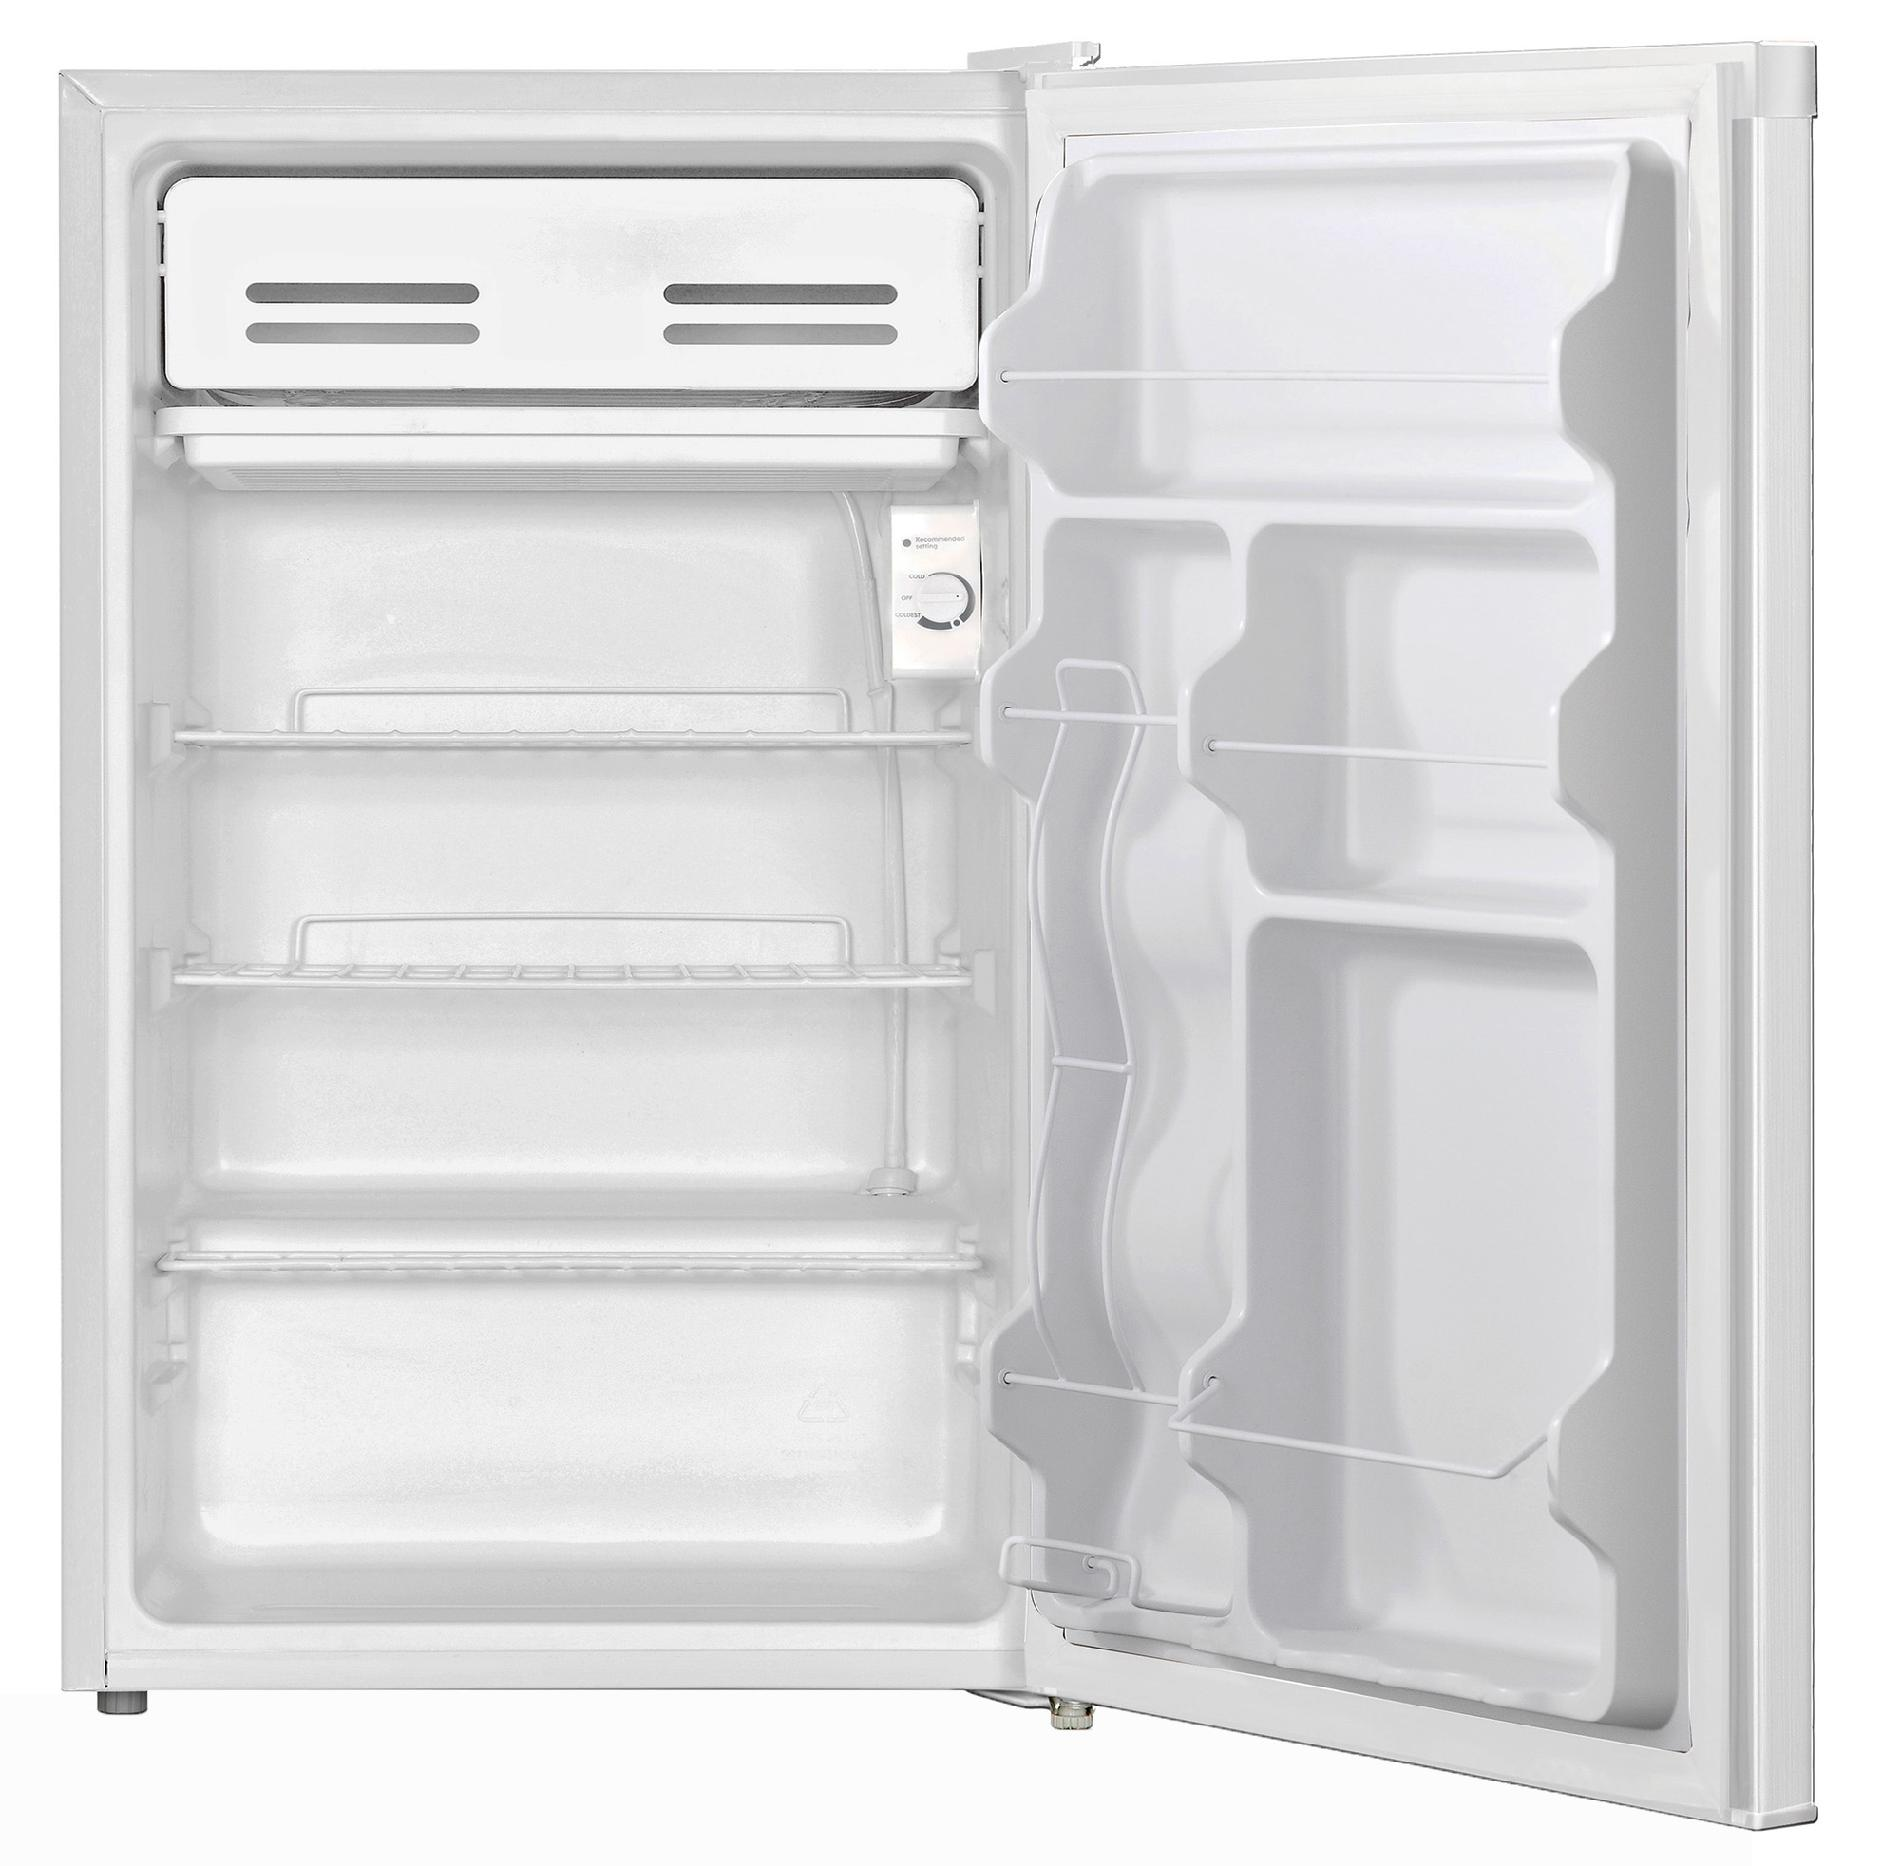 Kenmore 99792 3.3 cu. ft. Compact Refrigerator - White